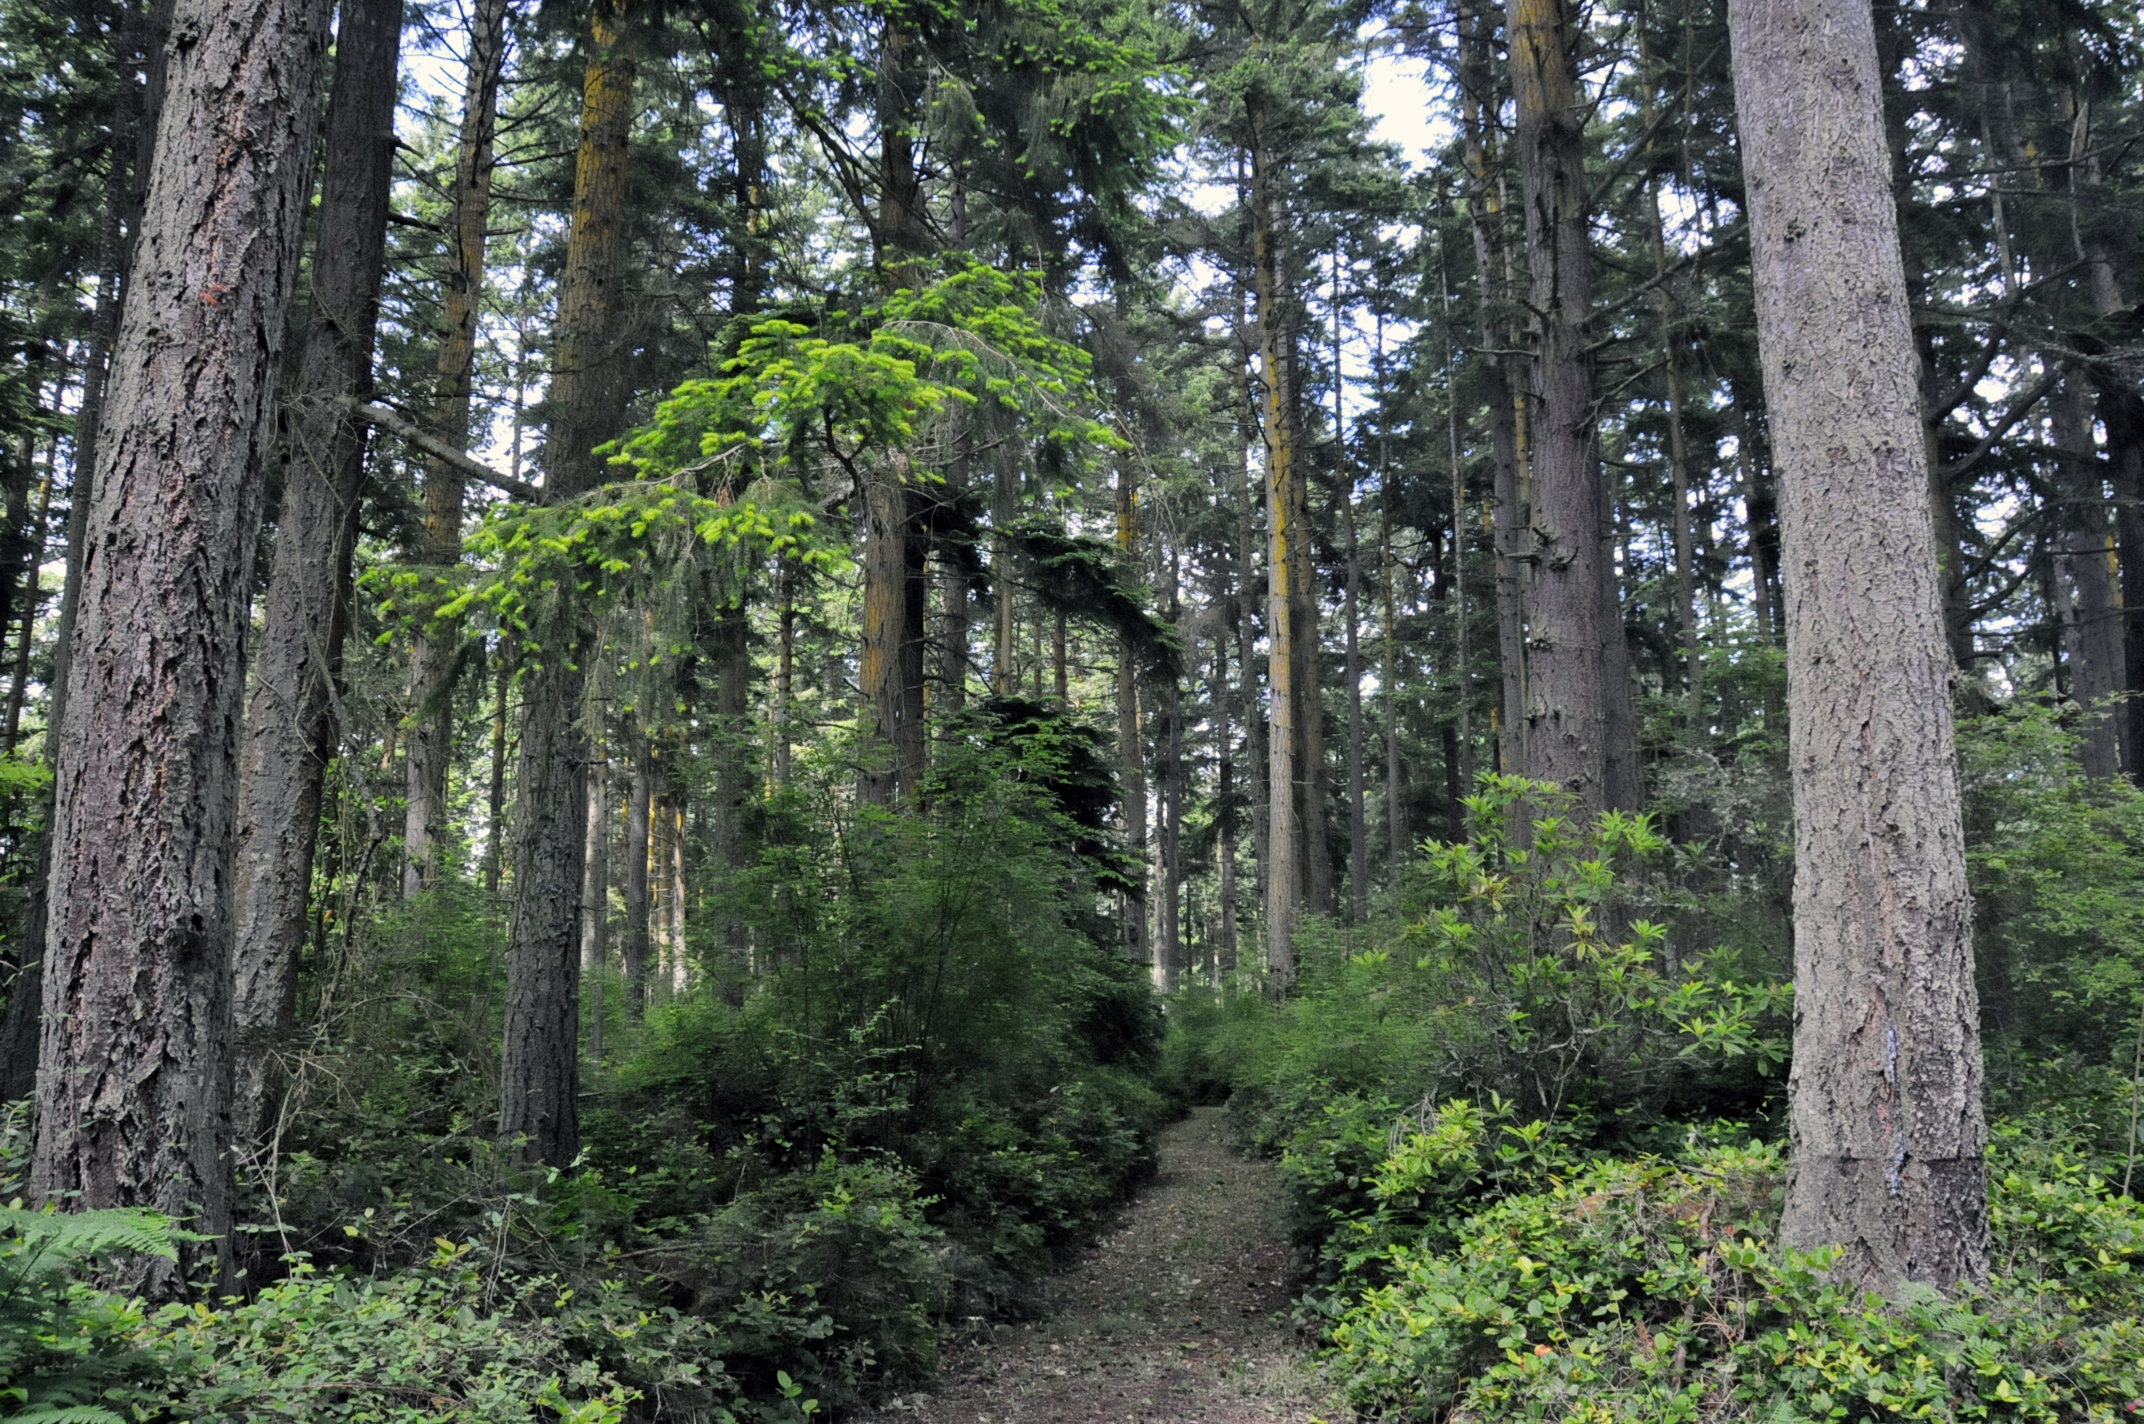 Early trail into center of forest